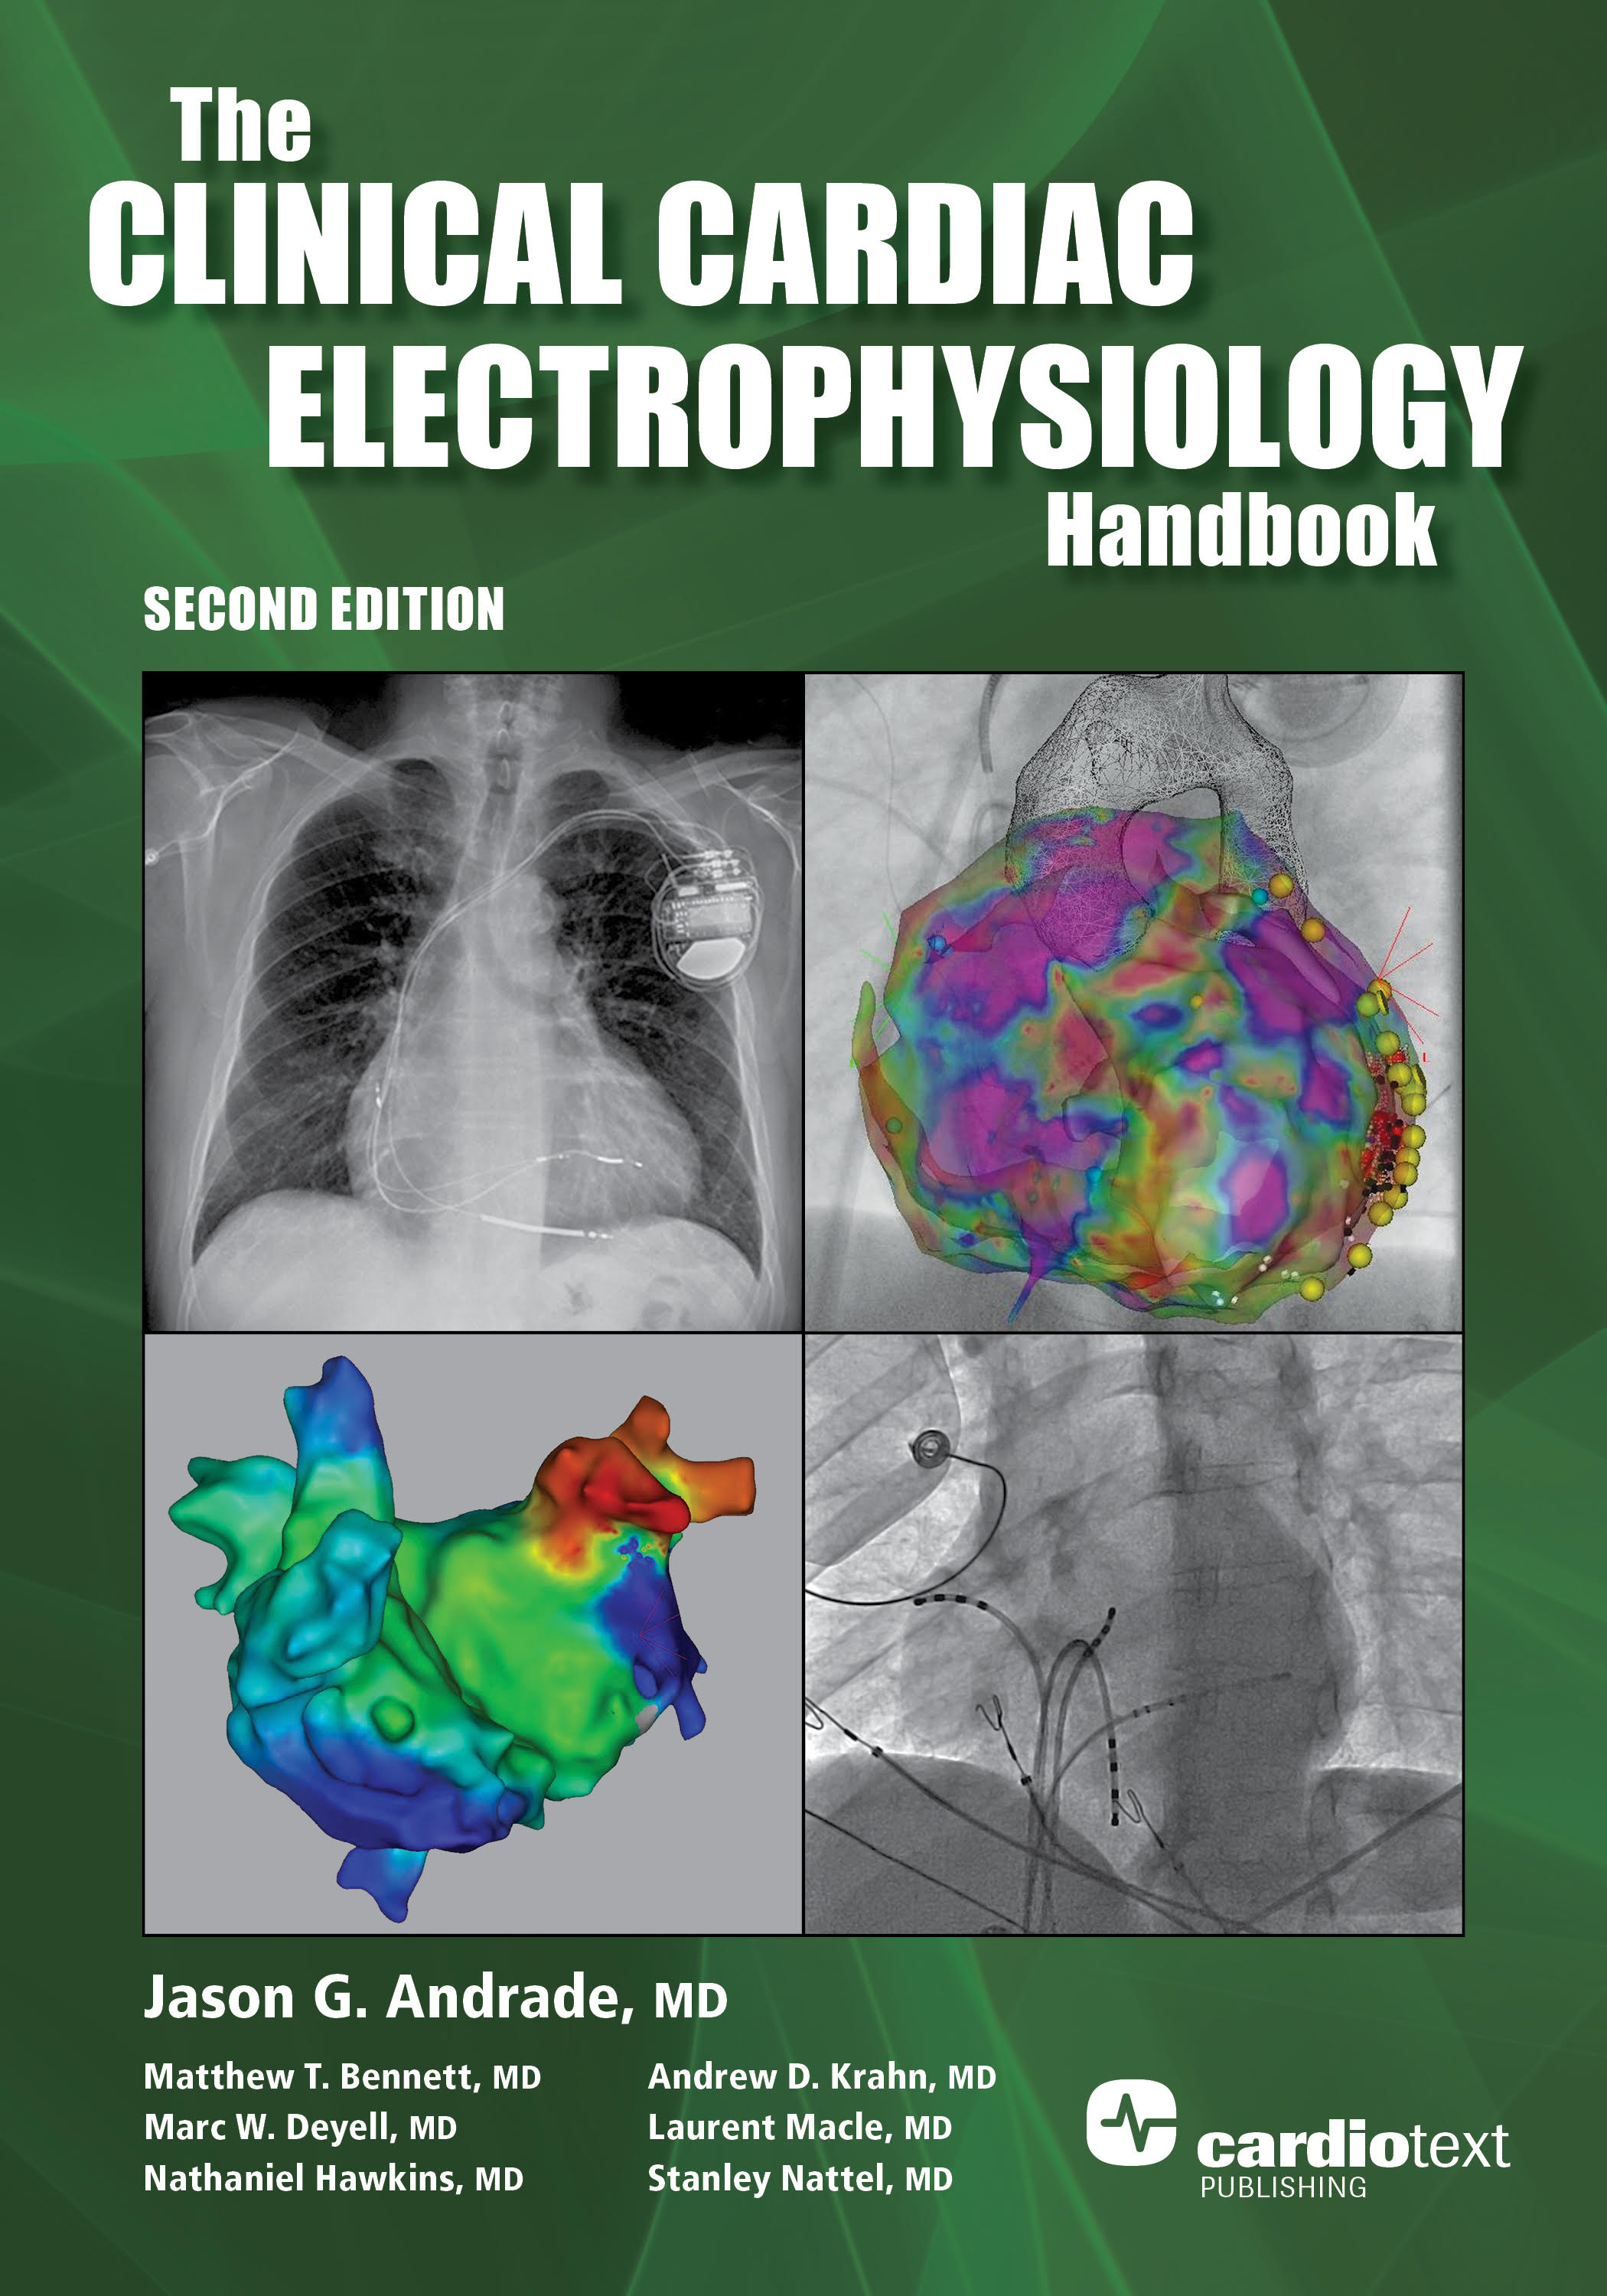 Clinical Cardiac Electrophysiology Handbook, Second Edition